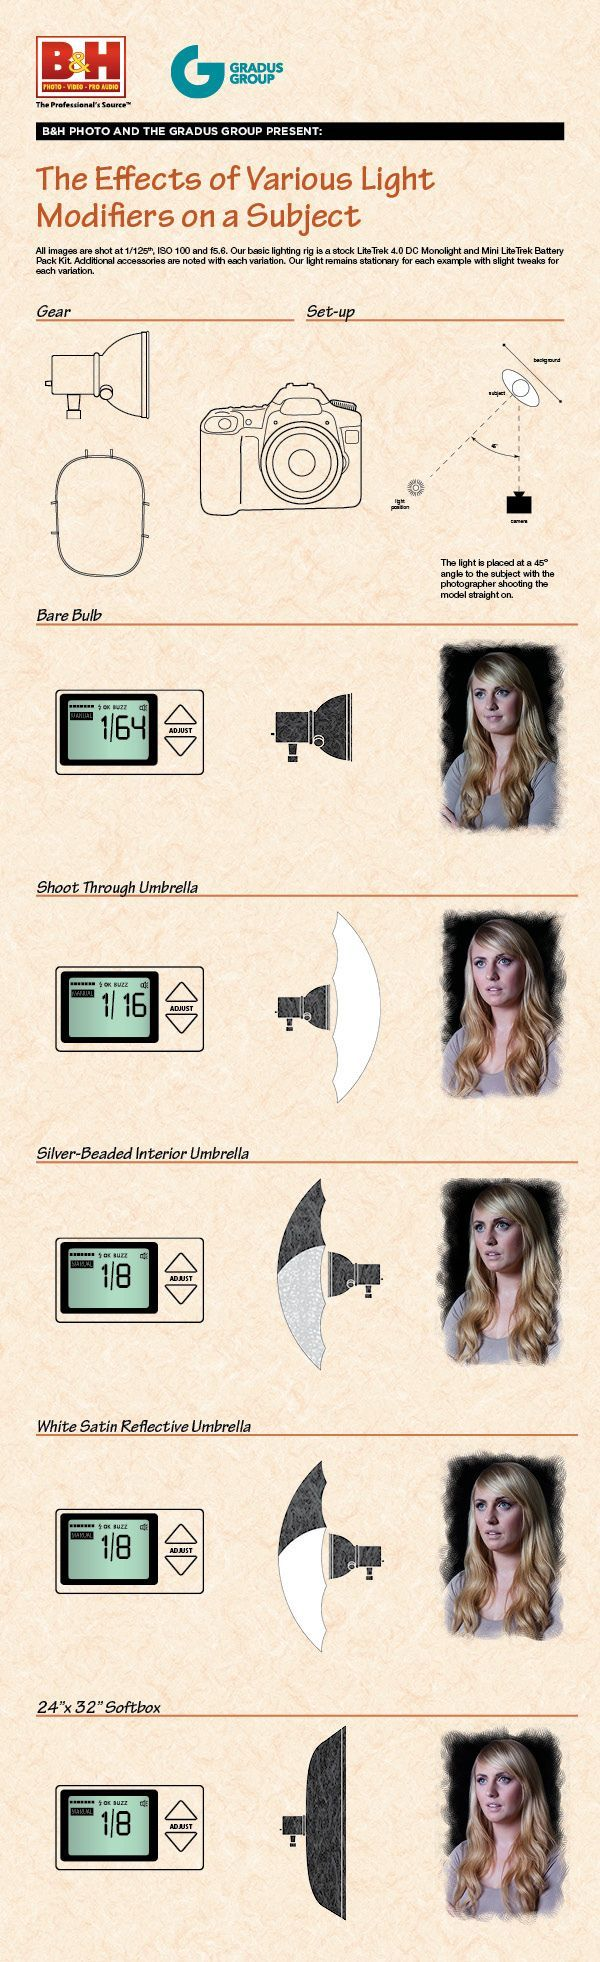 The Basics of Photography: F for Flash